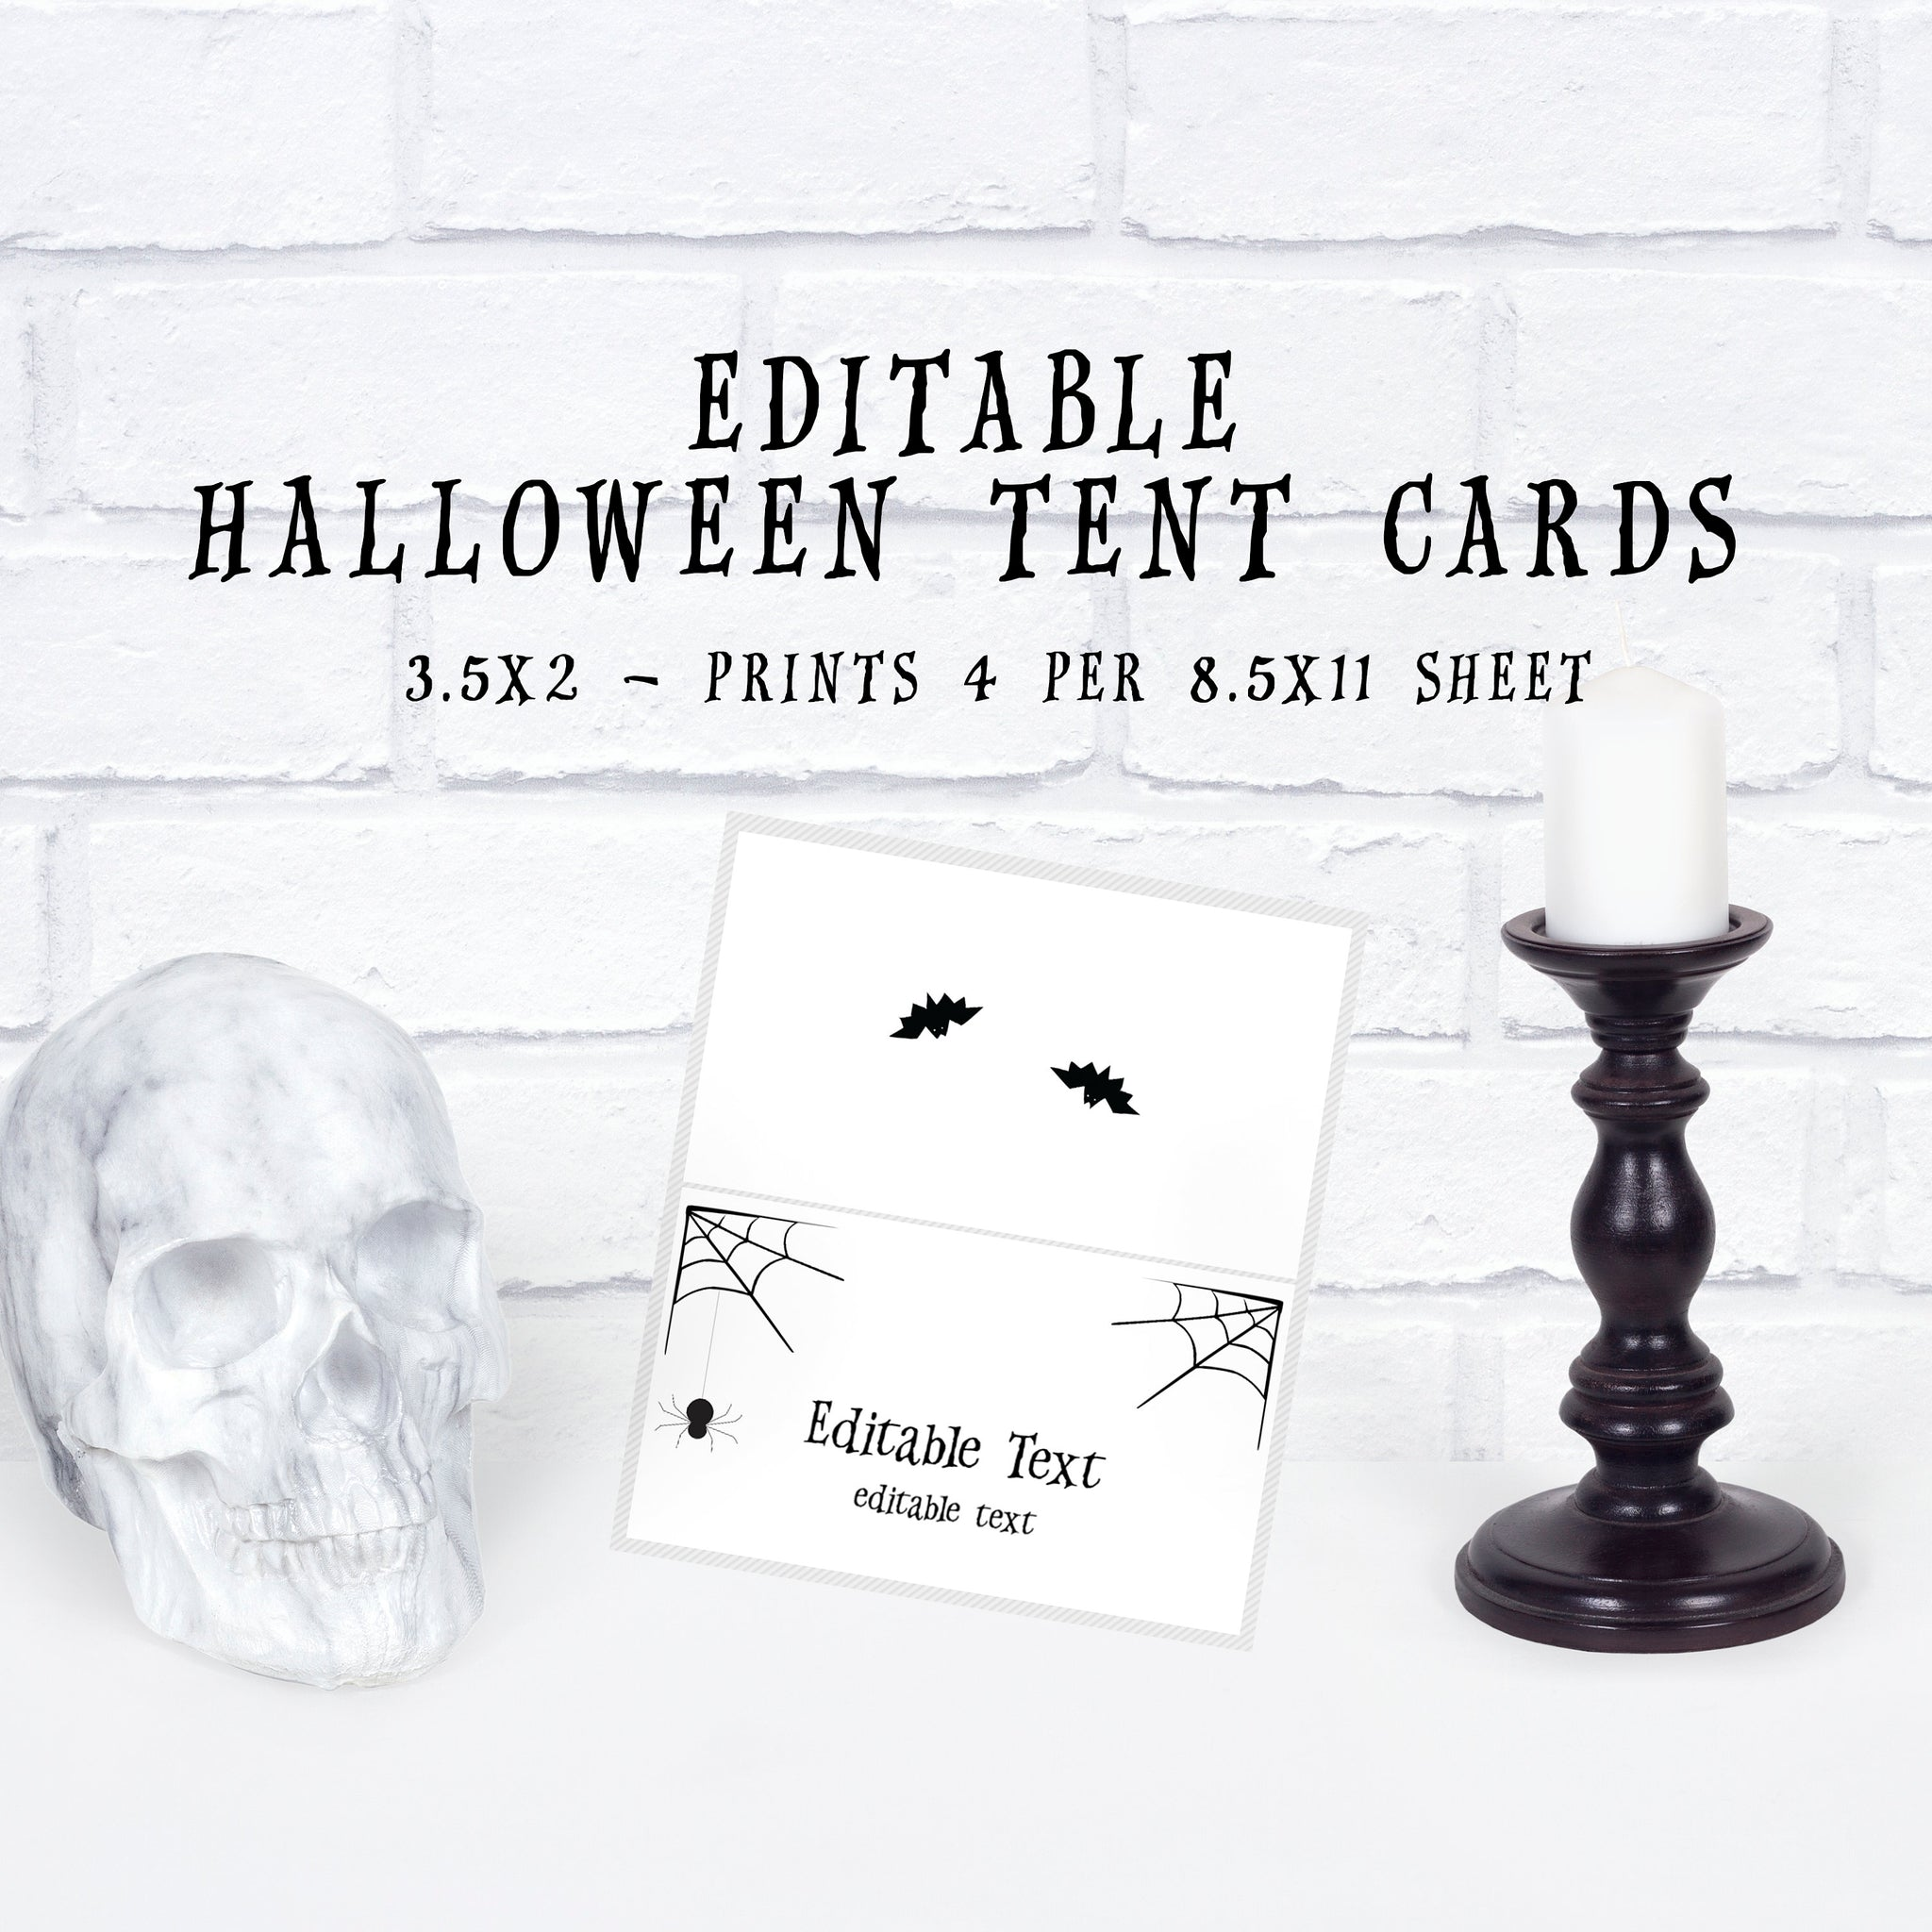 Halloween Party Food Labels Template, Halloween Tent Cards, Halloween Party Decorations Printable, EDITABLE DIGITAL DOWNLOAD - EDS100 - @PlumPolkaDot